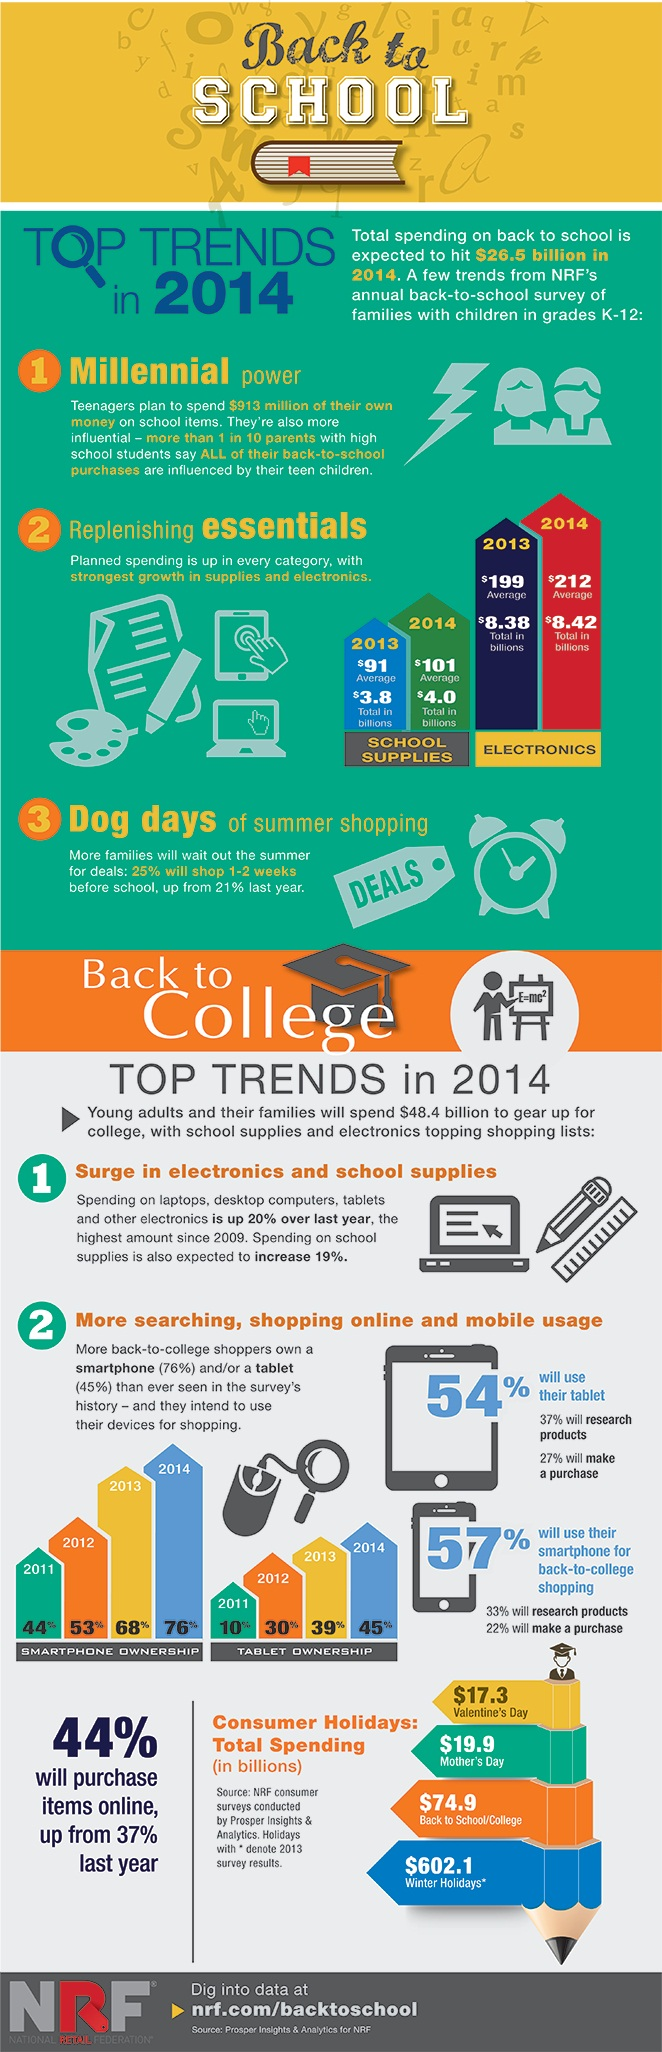 Hot Trends In Back To School Shopping